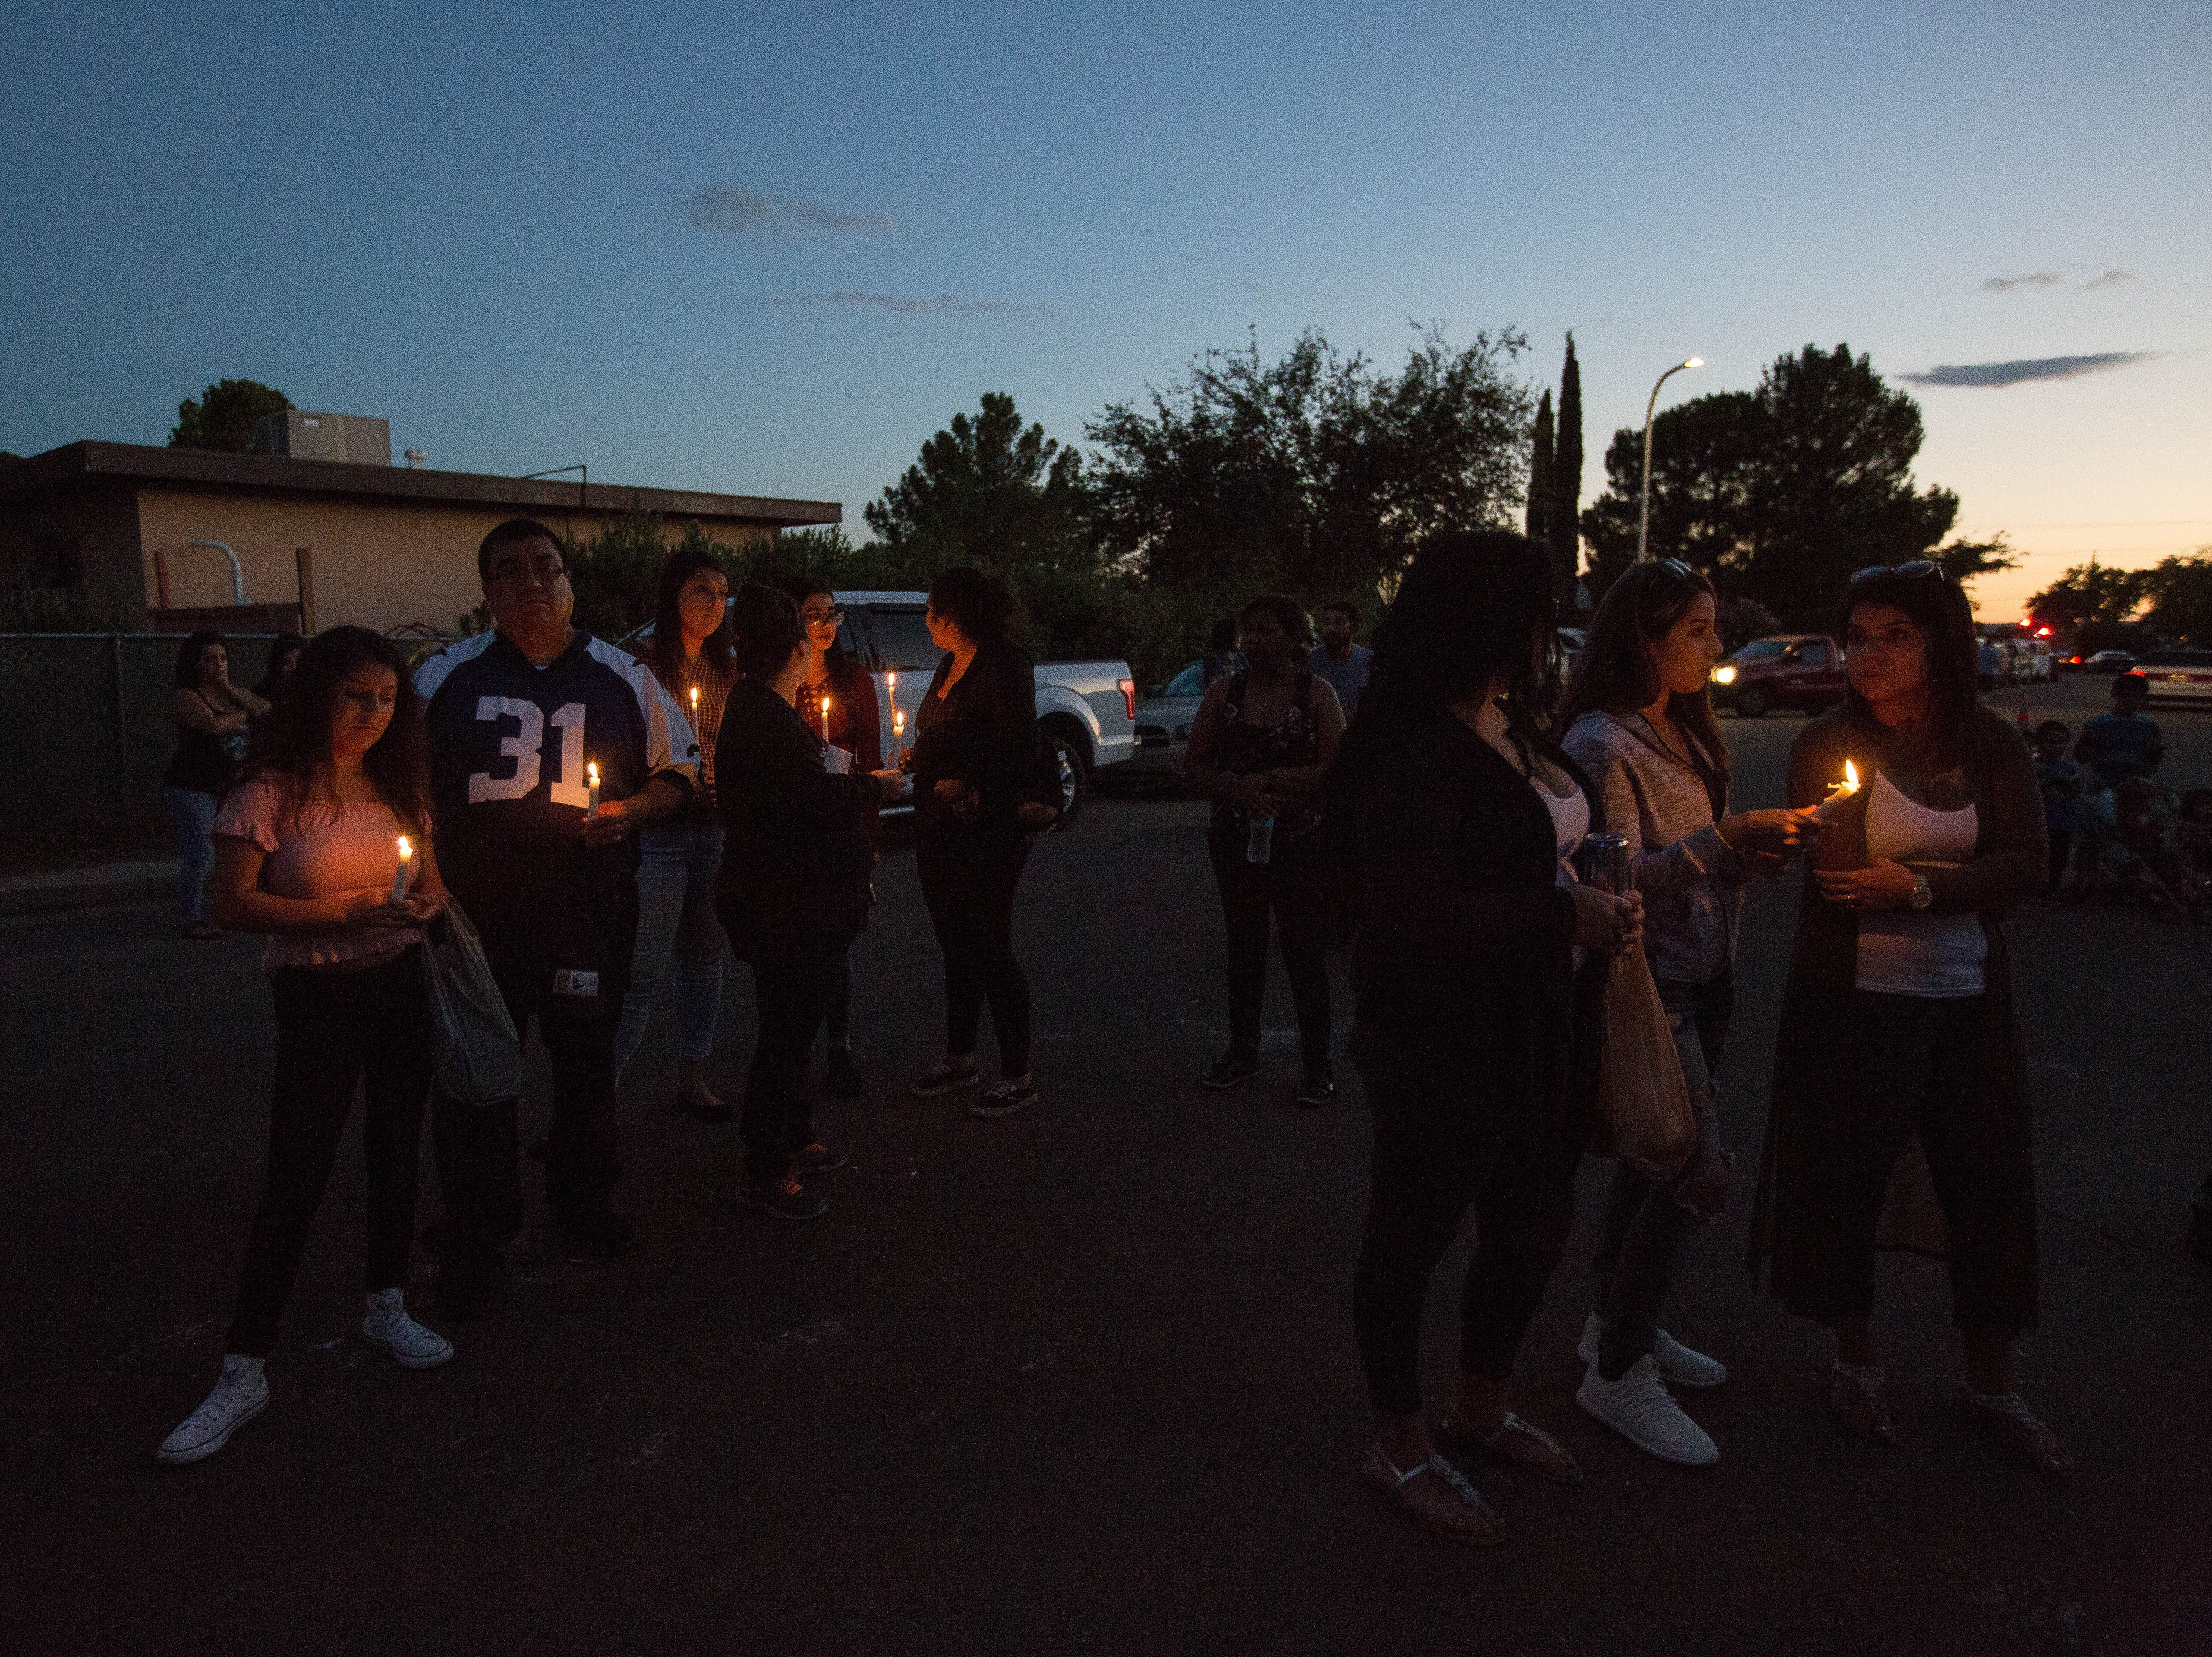 Friends, Members of the Las Cruces Community and Family of Fabiola Rodriguez, 2, gathered outside the house of her maternal grandparents for a candlelight vigil, Friday September 7, 2018.